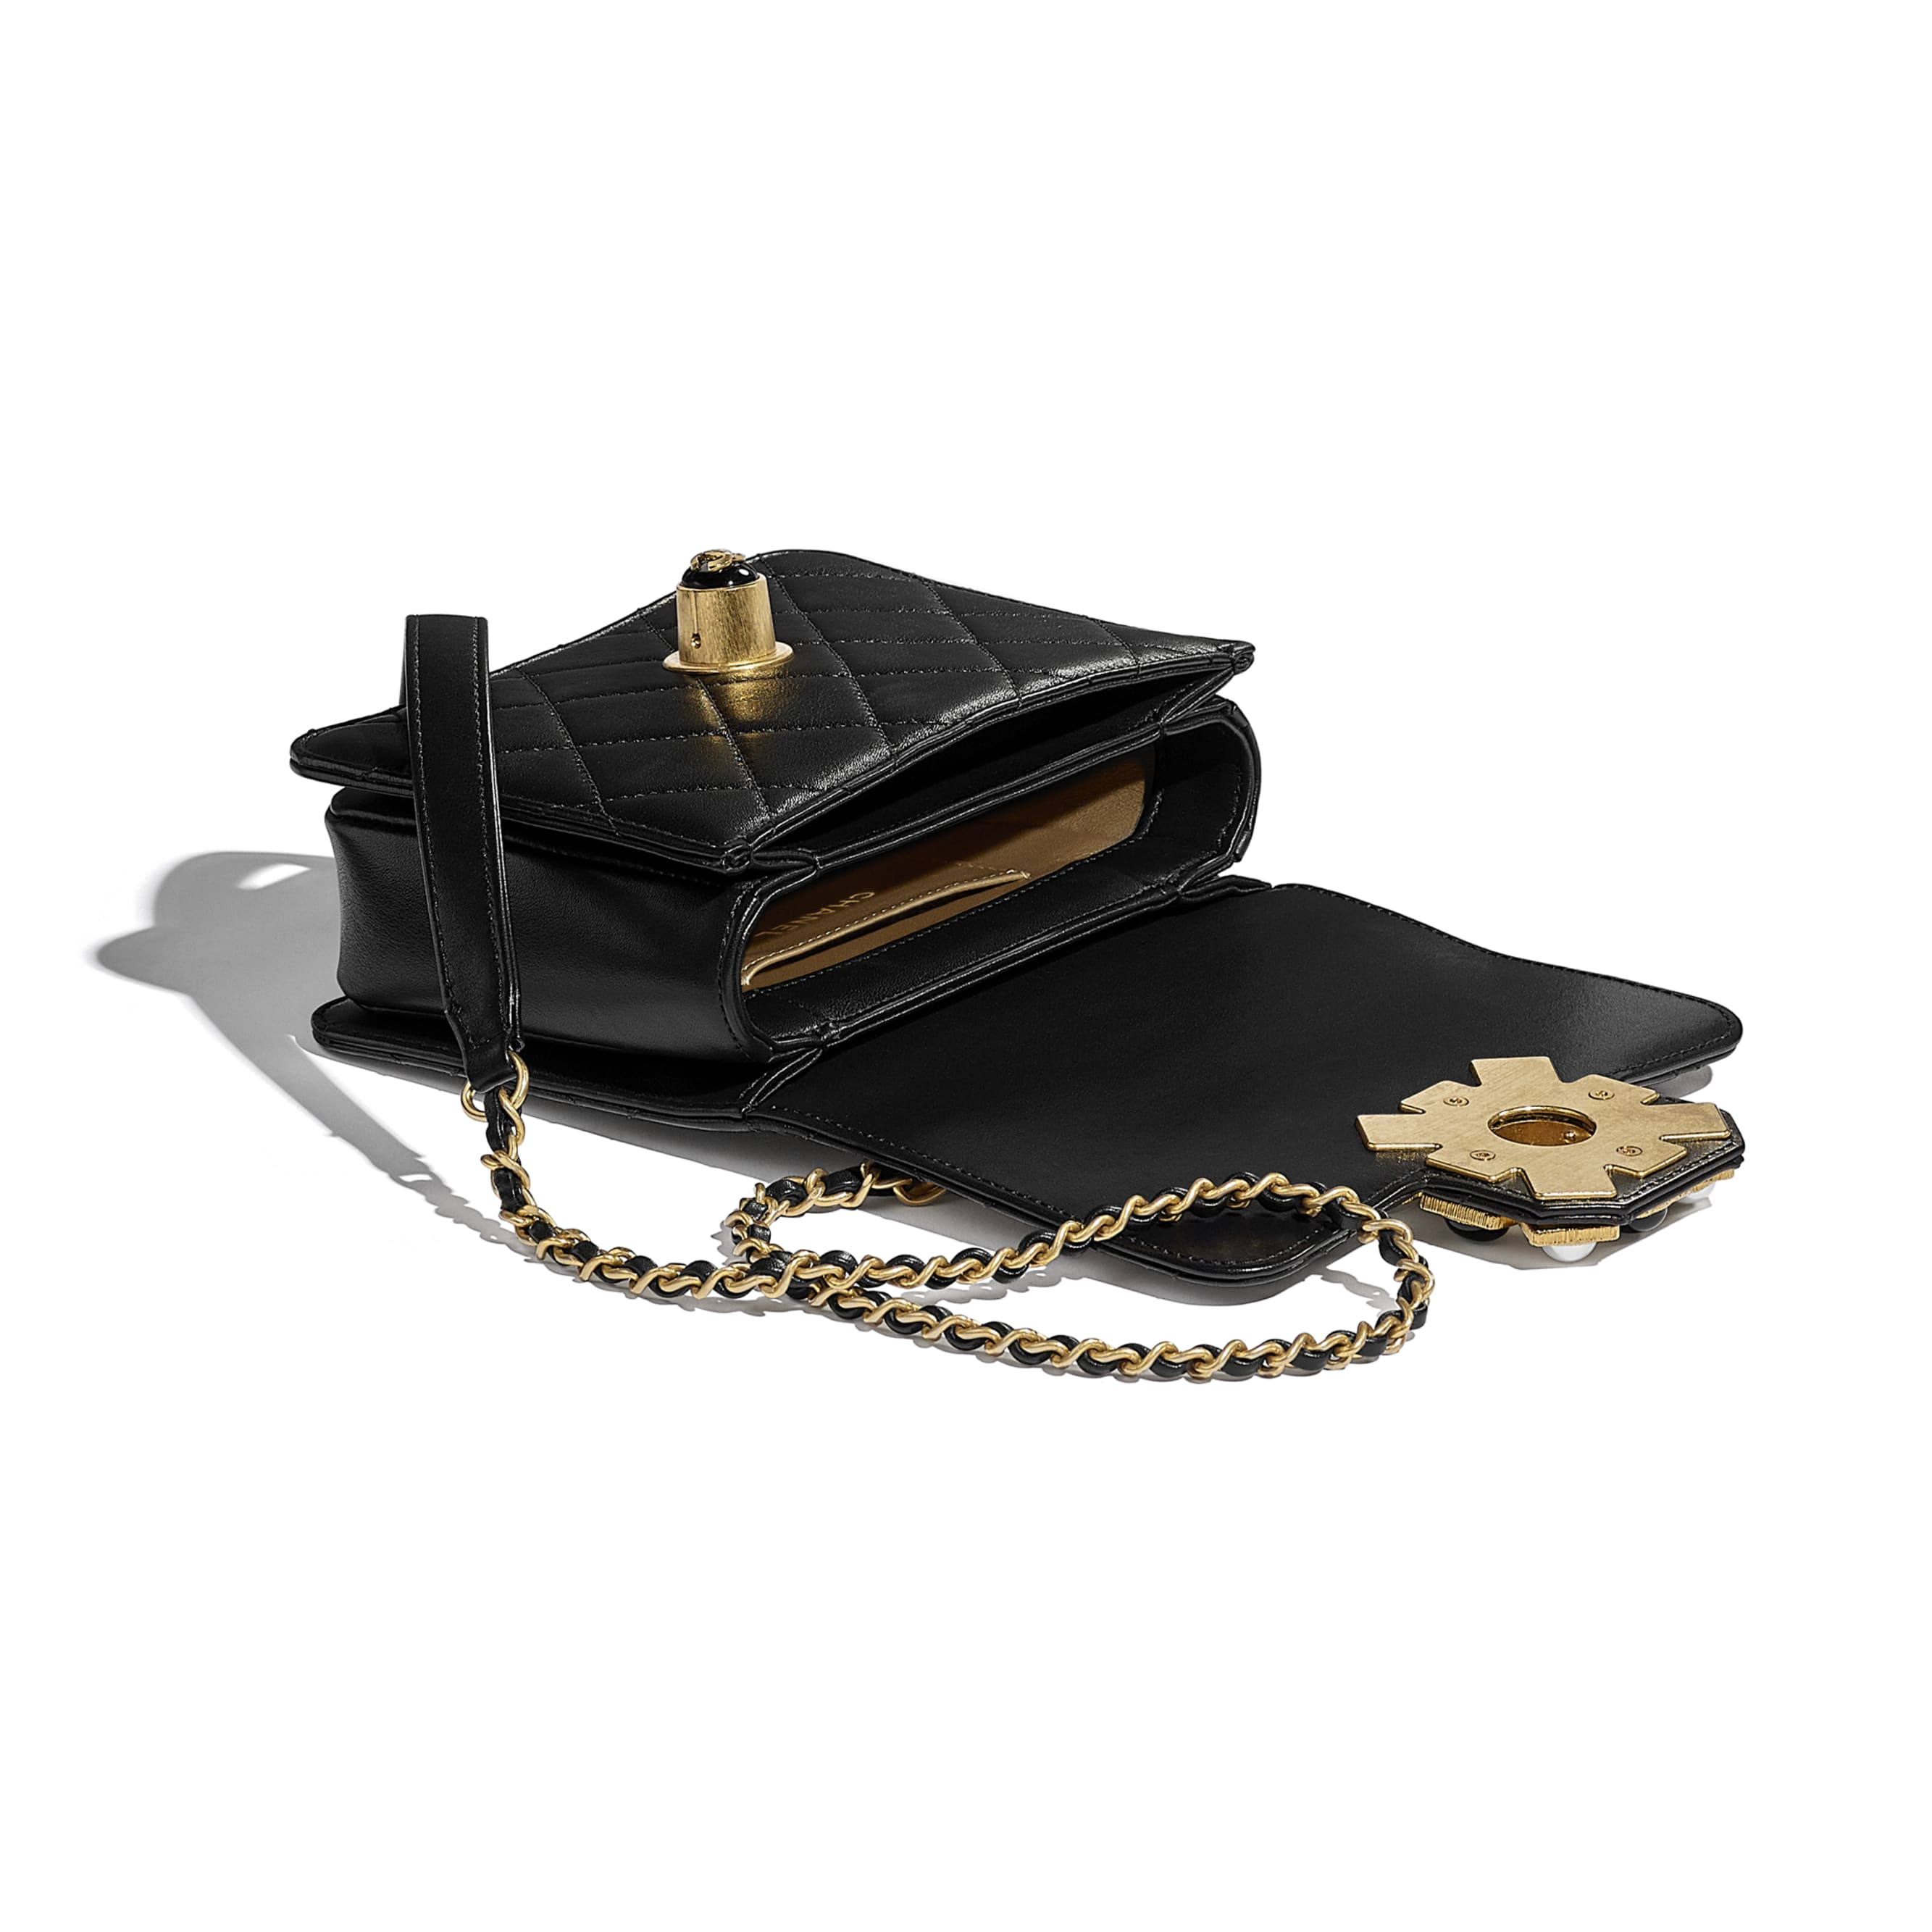 Flap Bag - Black - Calfskin, Onyx, Pearls & Gold-Tone Metal - CHANEL - Other view - see standard sized version